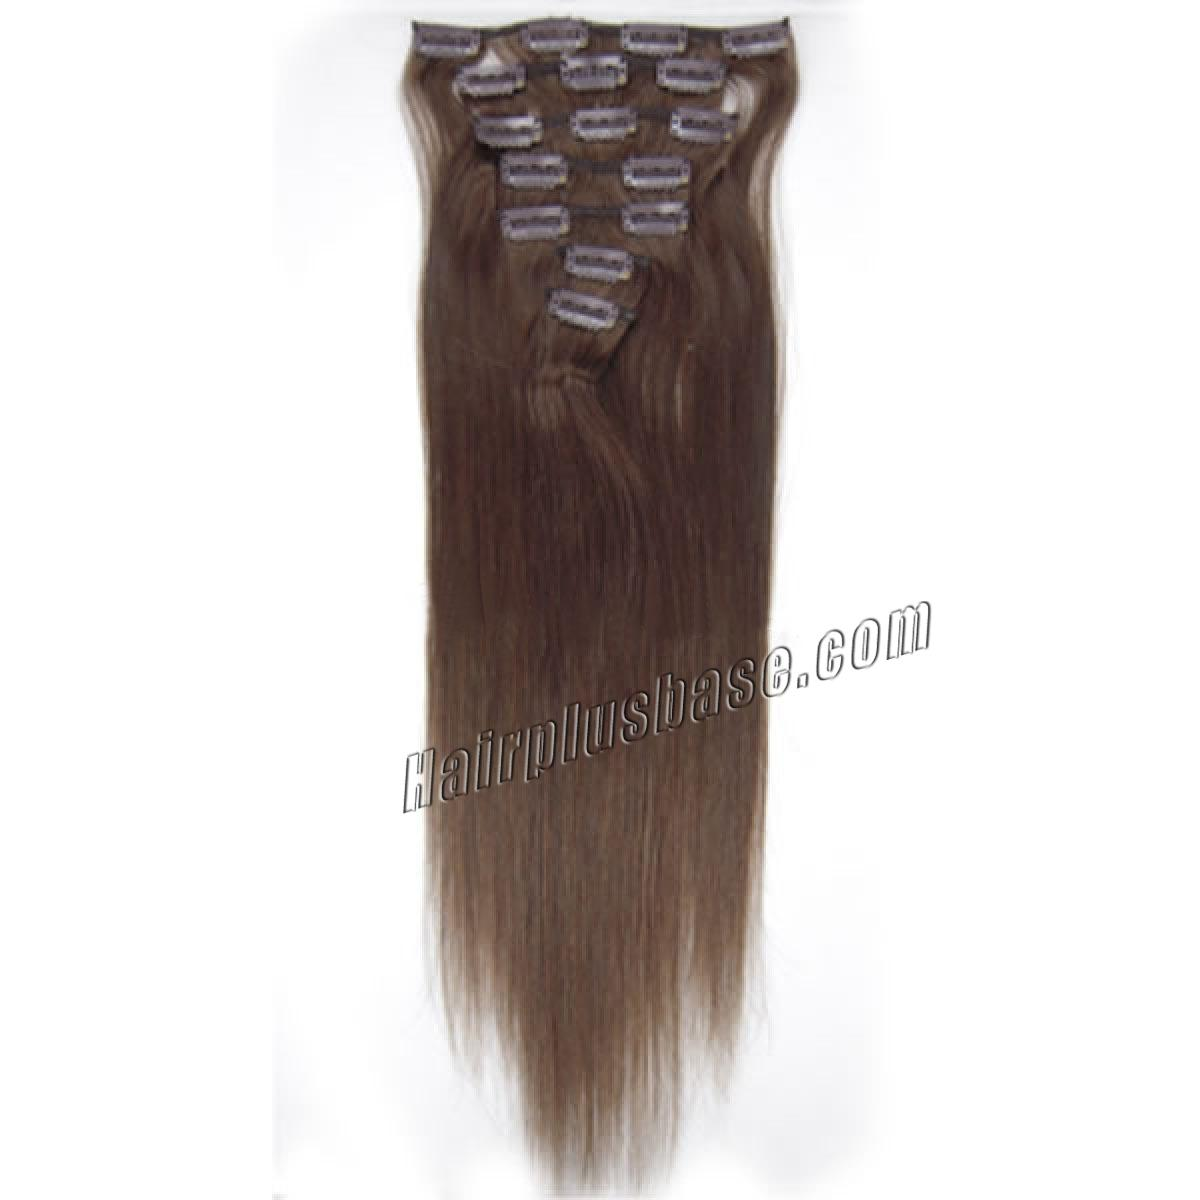 15 Inch #4 Medium Brown Clip In Human Hair Extensions 7pcs no 2